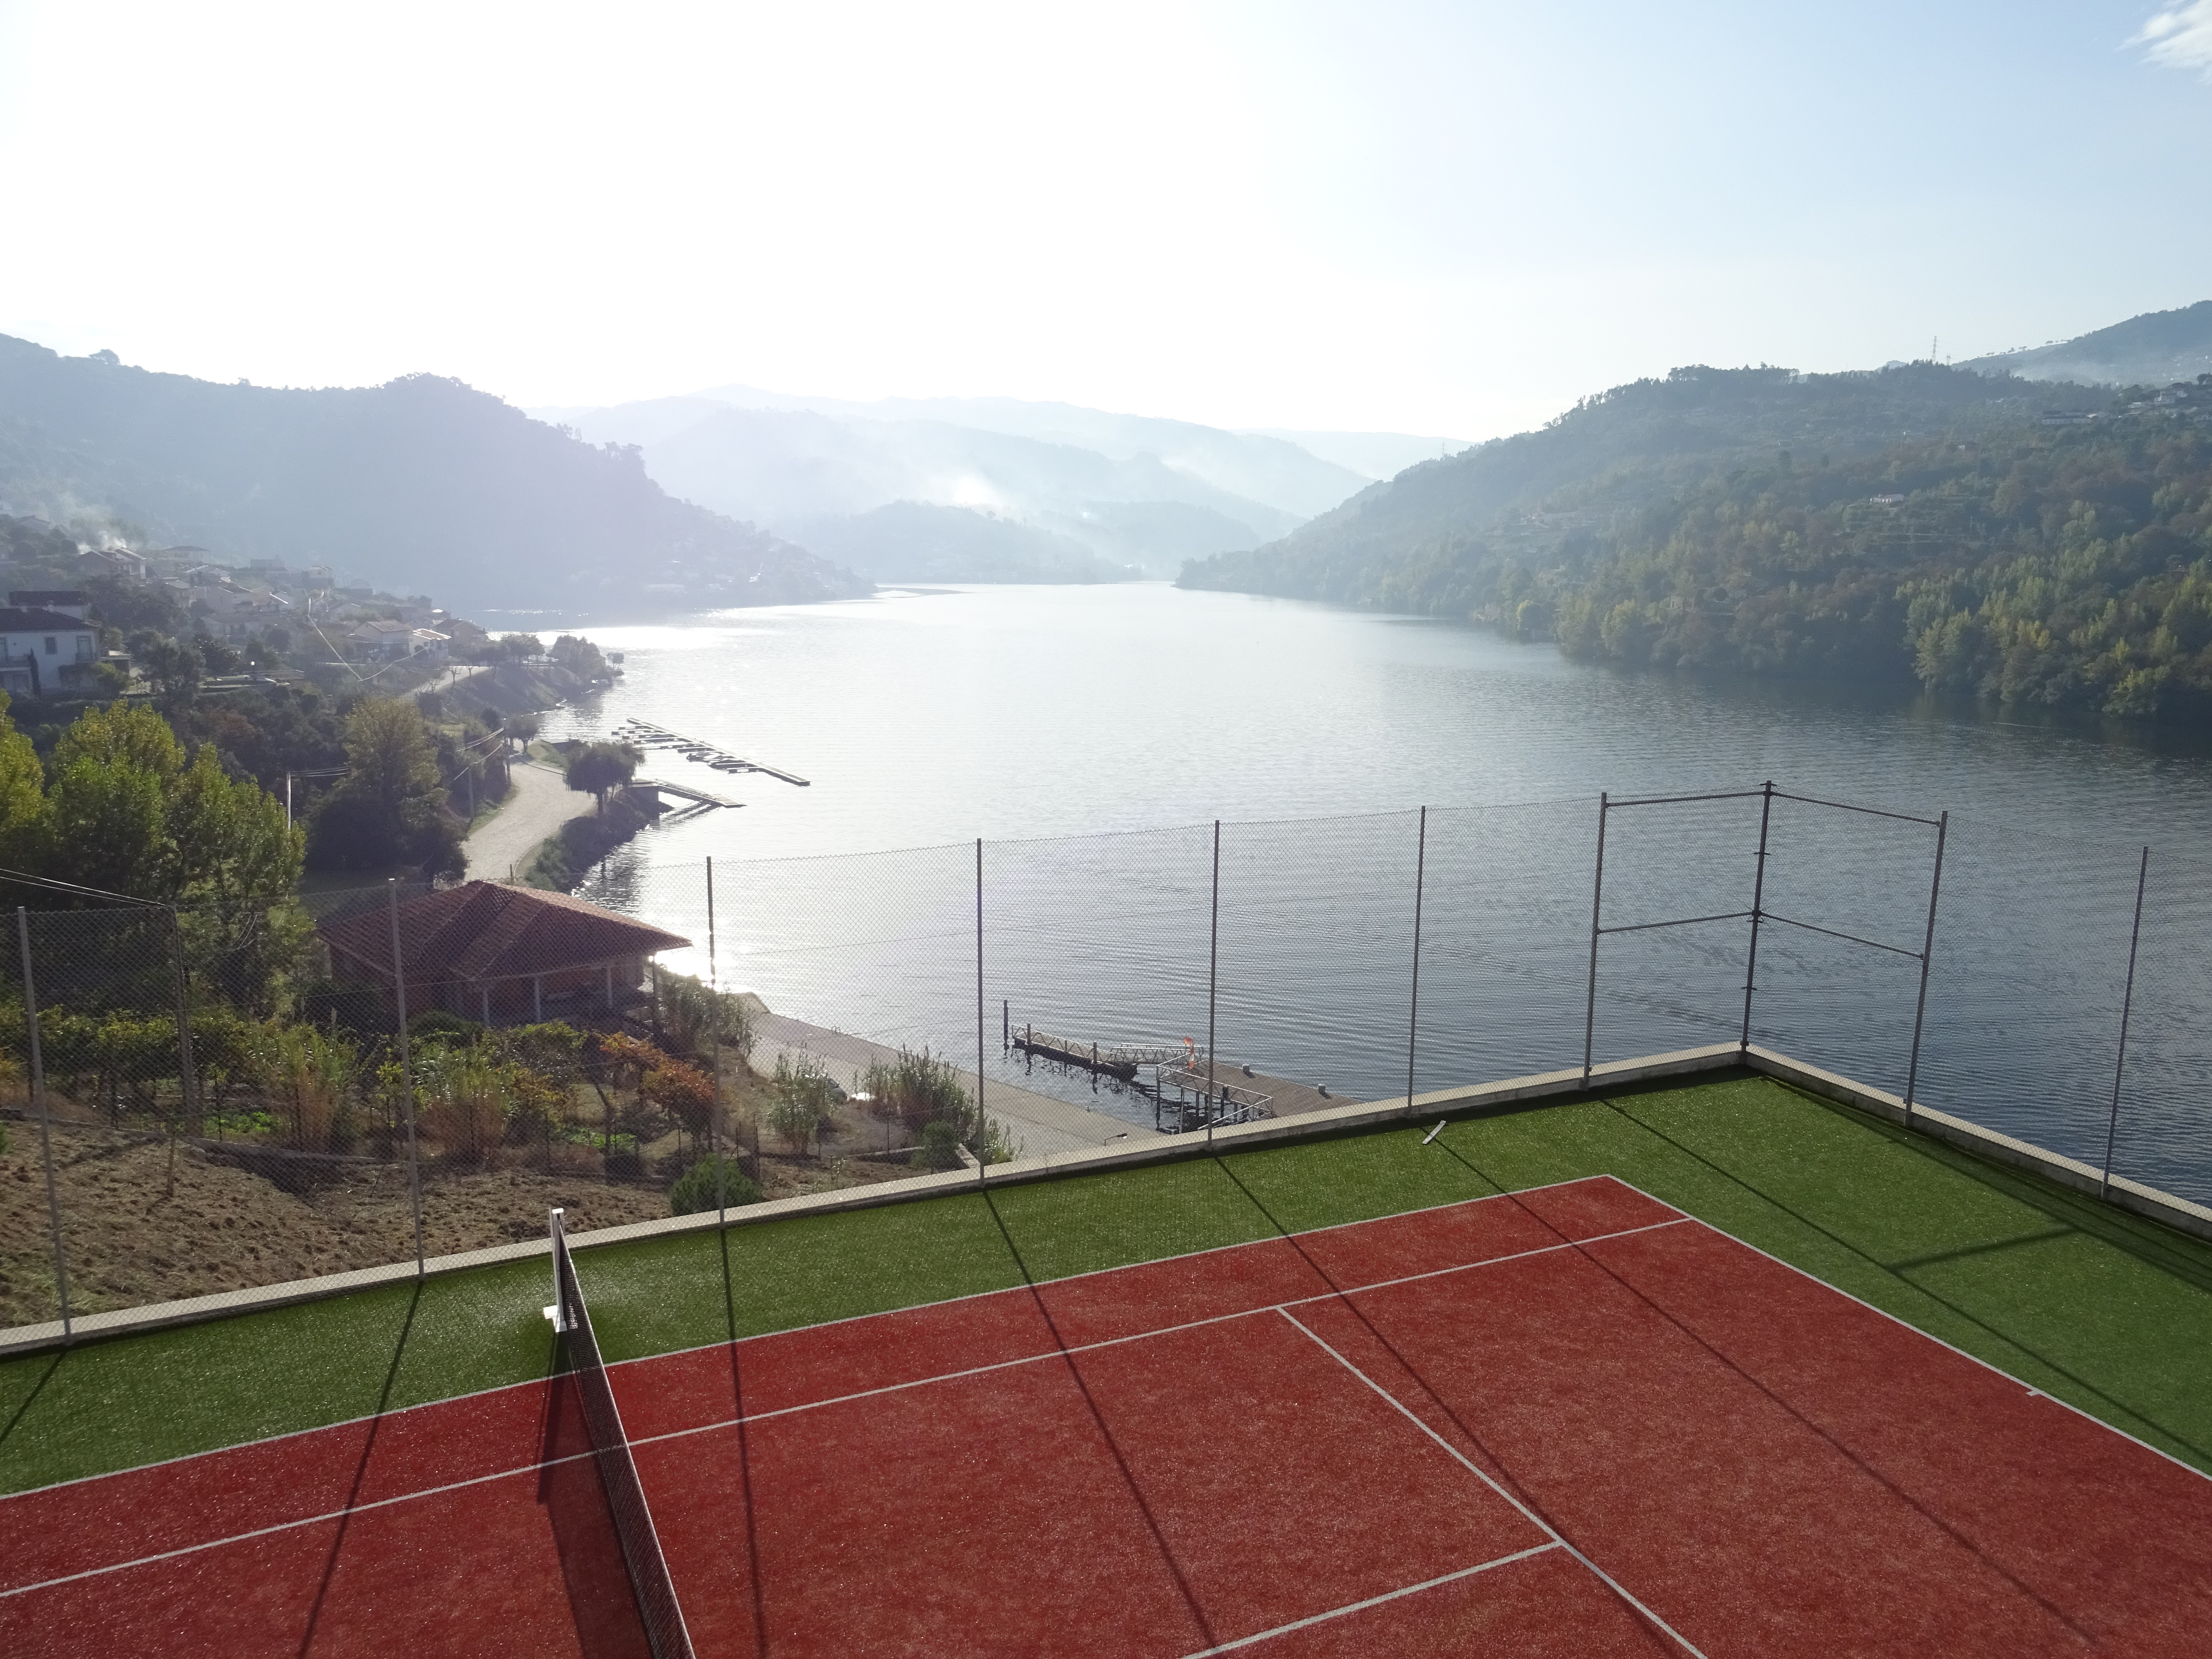 Whoever performs well at this tennis court has seen too many beautiful places in the world